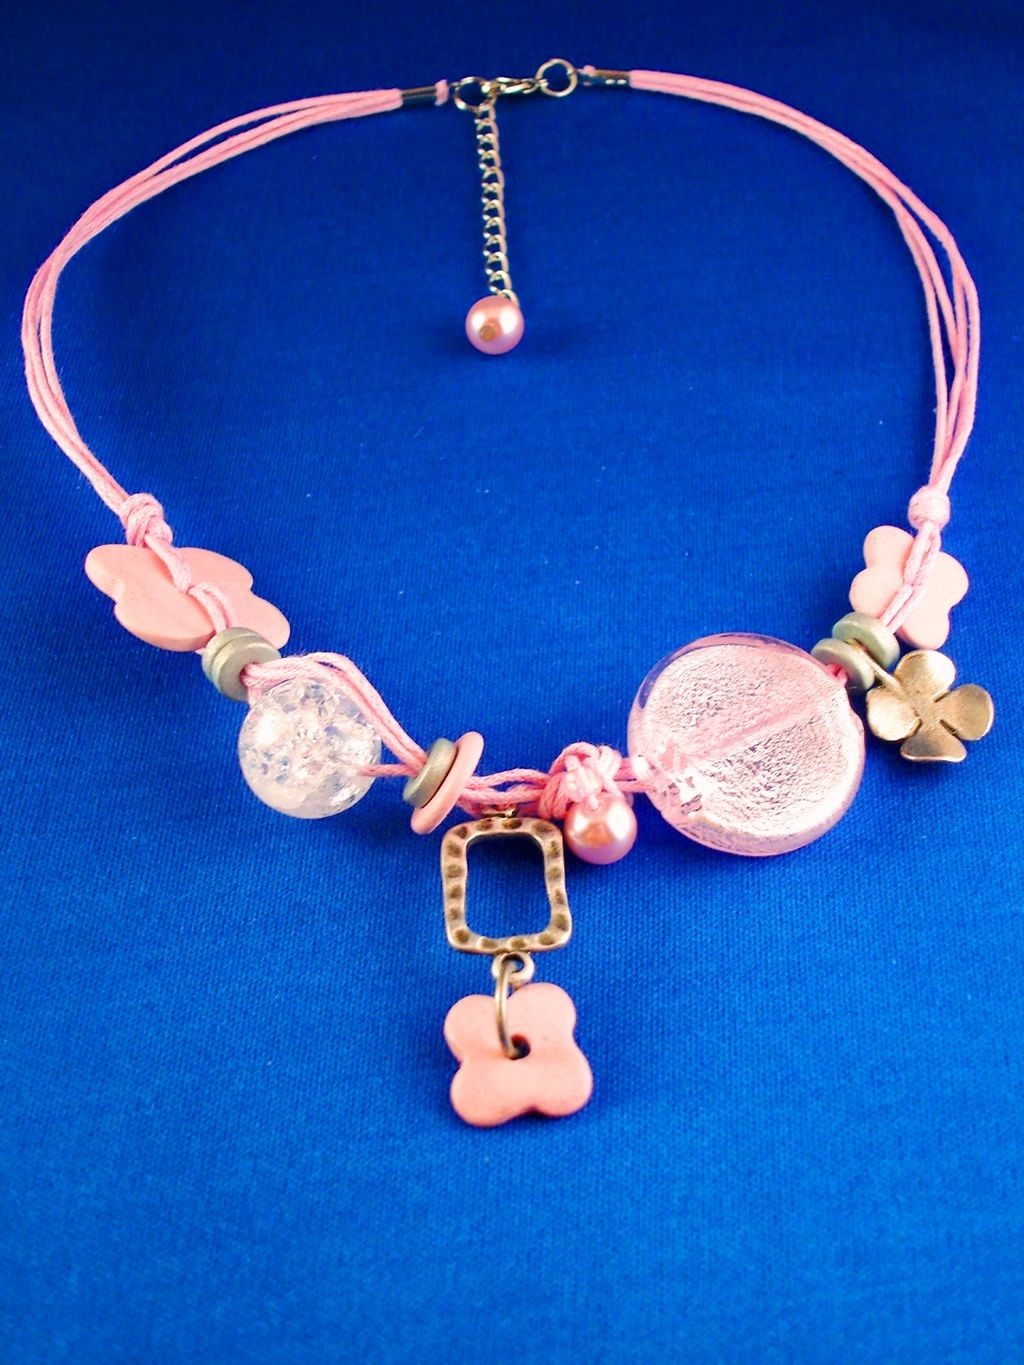 Pink Flowers Charm & Bead Necklace, Stained Glass Circle & Crystal Ball, Artificial Pearls, Ceramic, Cotton Cord, European Fashion Jewelry